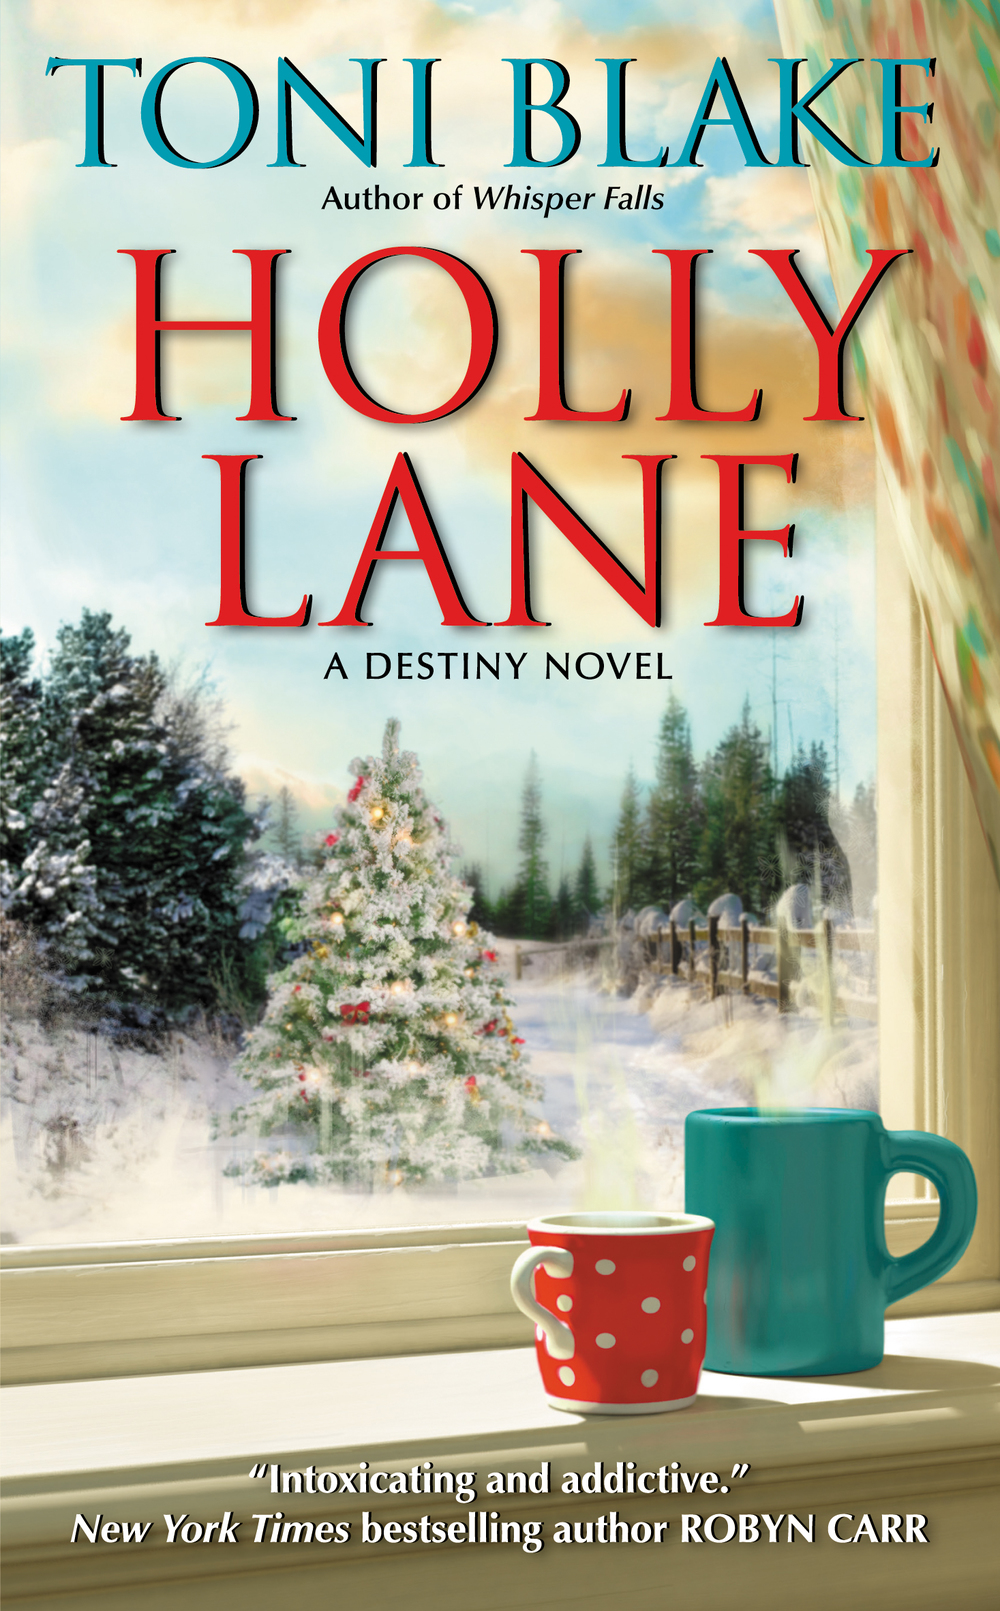 Holly Lane Destiny Series, book 4 Sue Ann Simpkins & Adam Becker November 2011